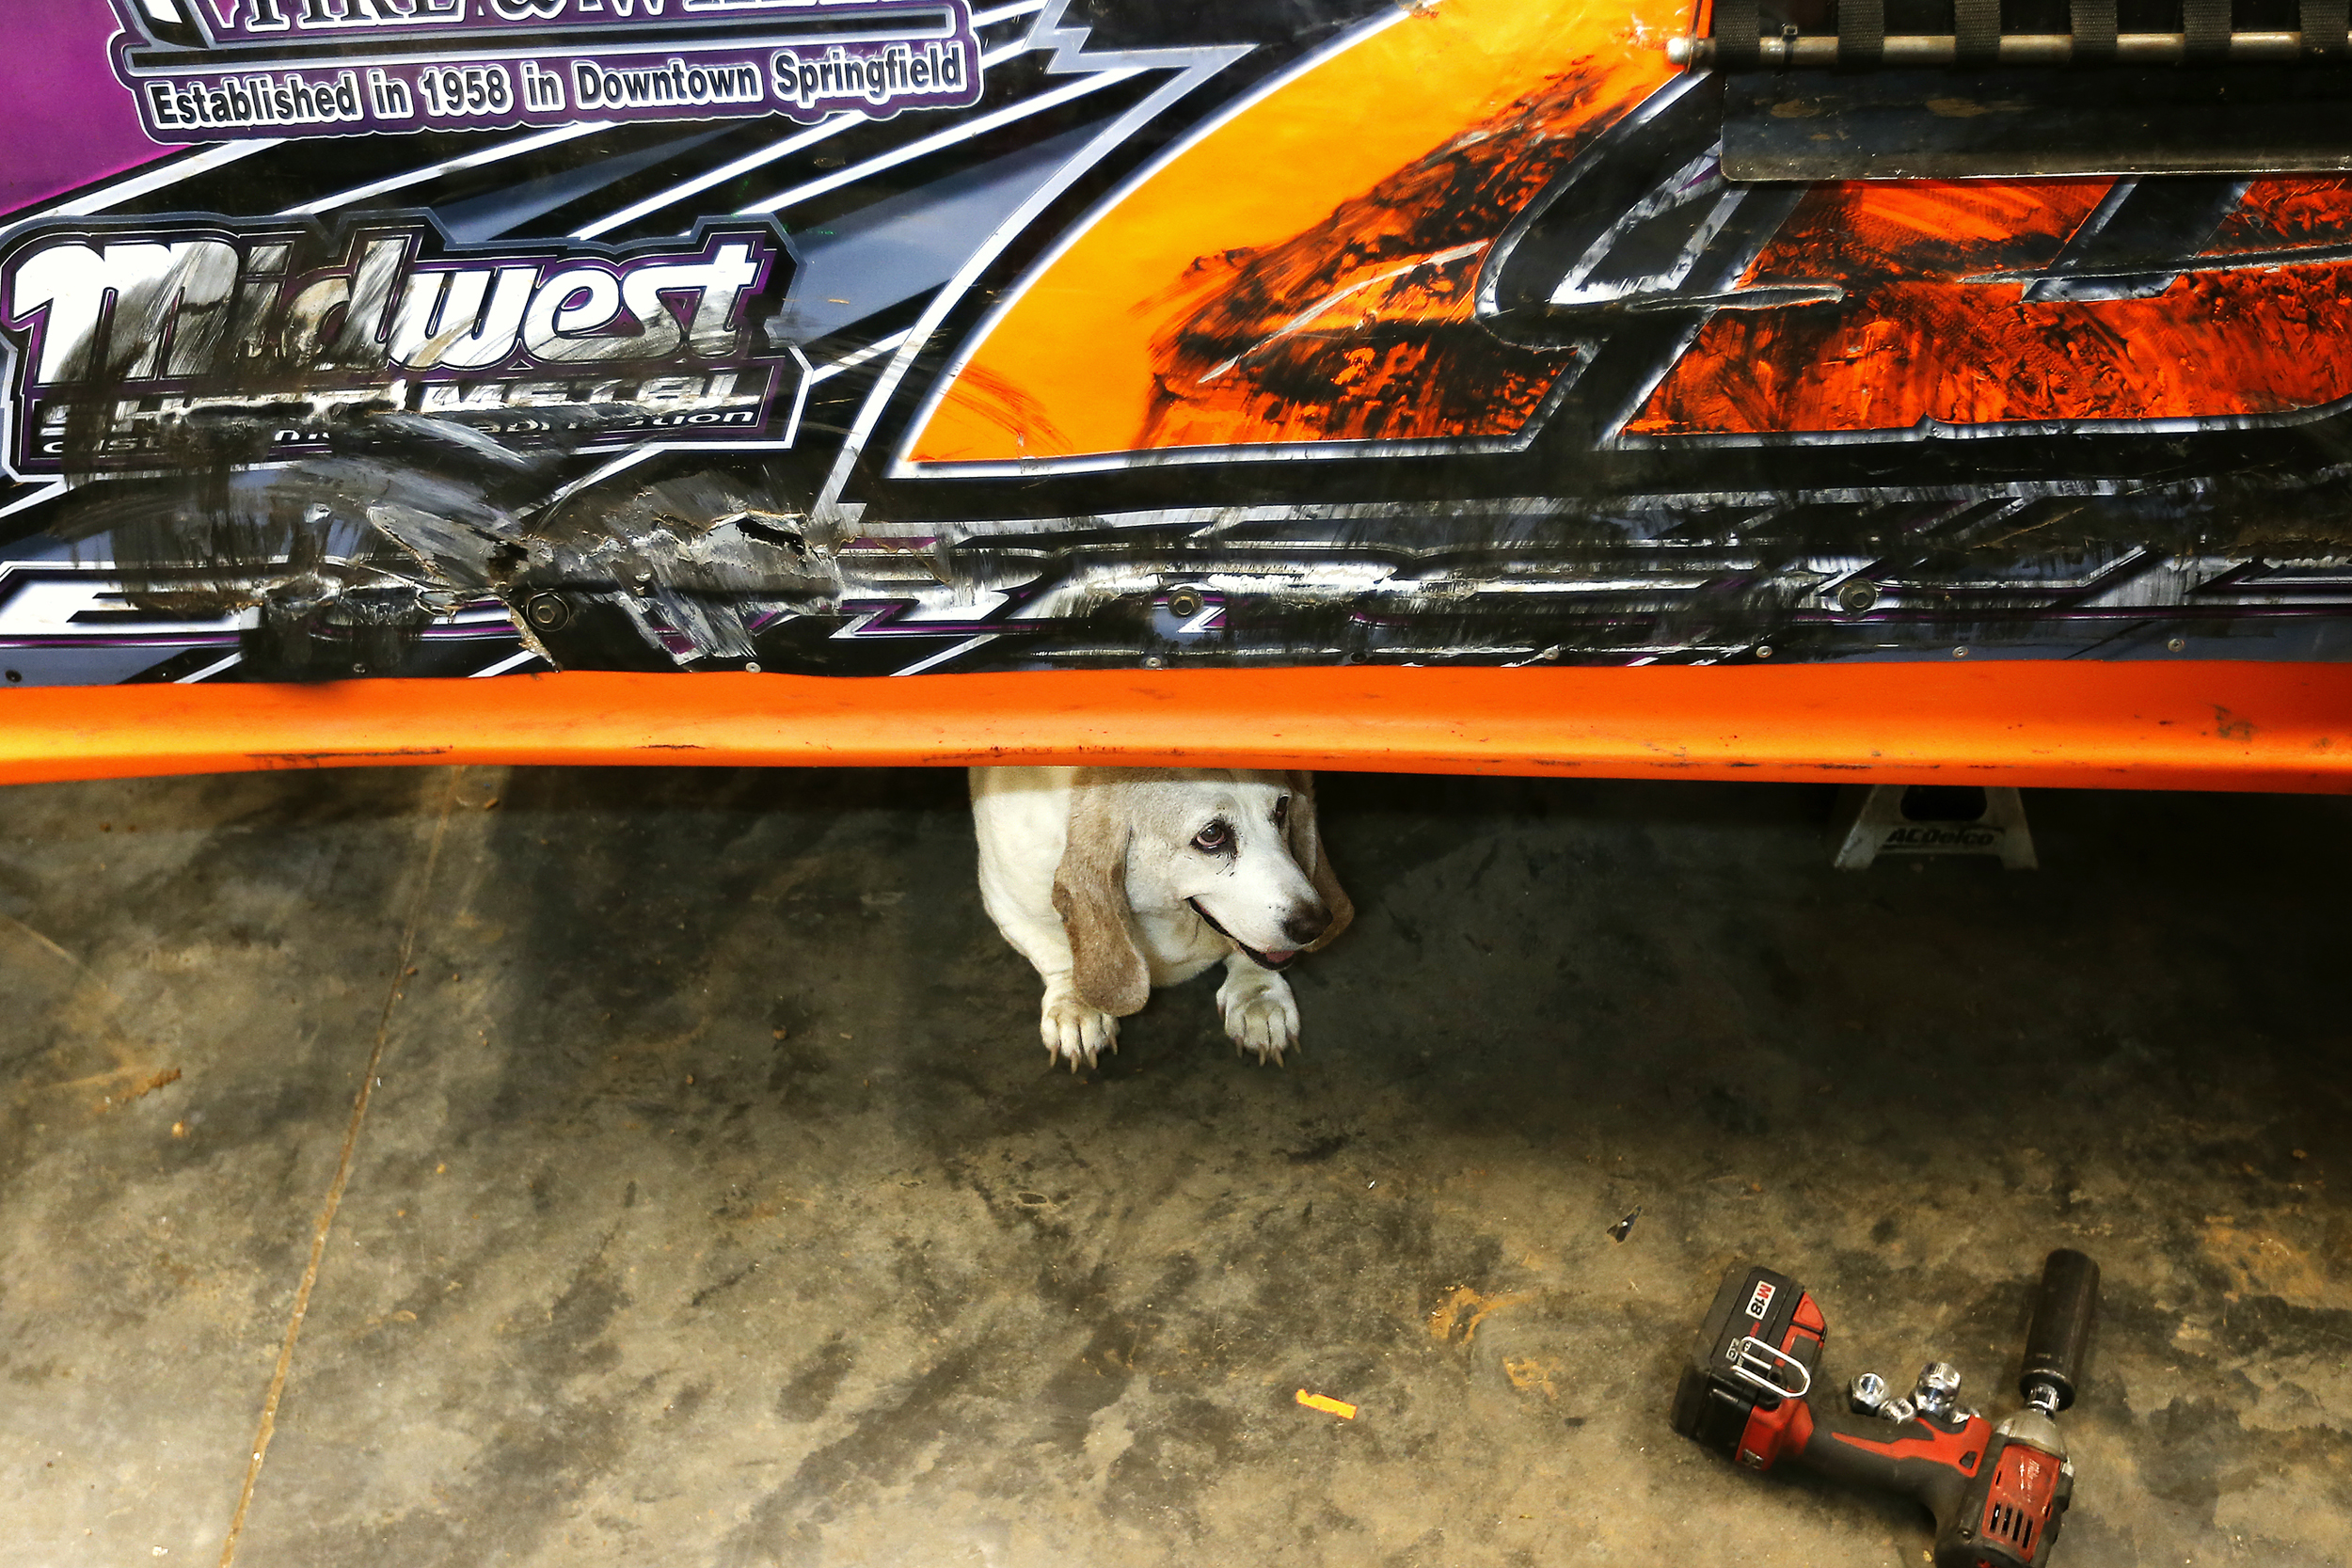 """Sophie, half of Mickey Burrell's couple of basset hounds, stays cool under Burrell's """"A-Mod"""" car in Springfield, Mo. on July 8, 2015 as he and Elston Moore work on getting the car back in shape for a race at Monett Speedway only a couple days away."""